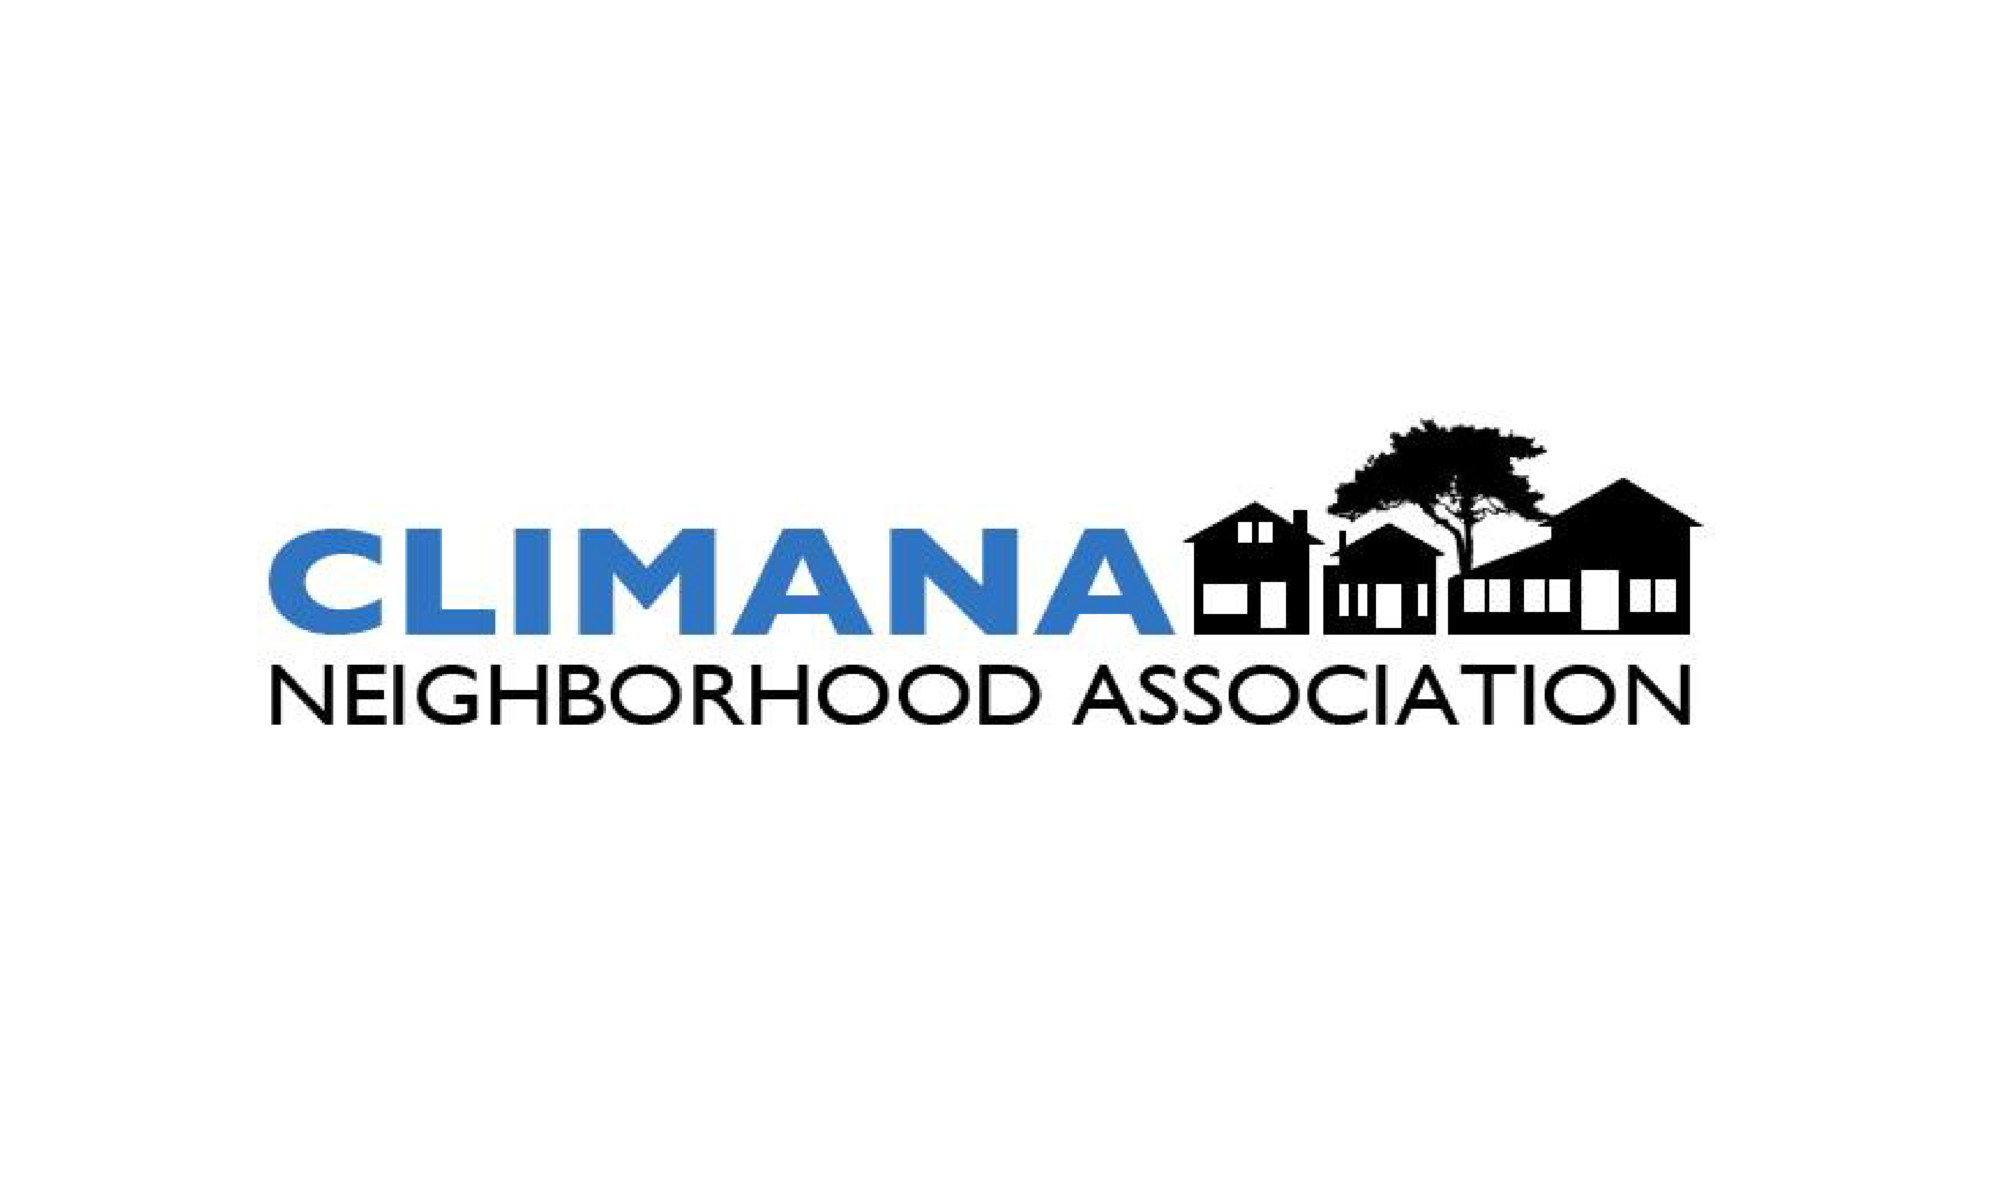 Climana Neighborhood Association